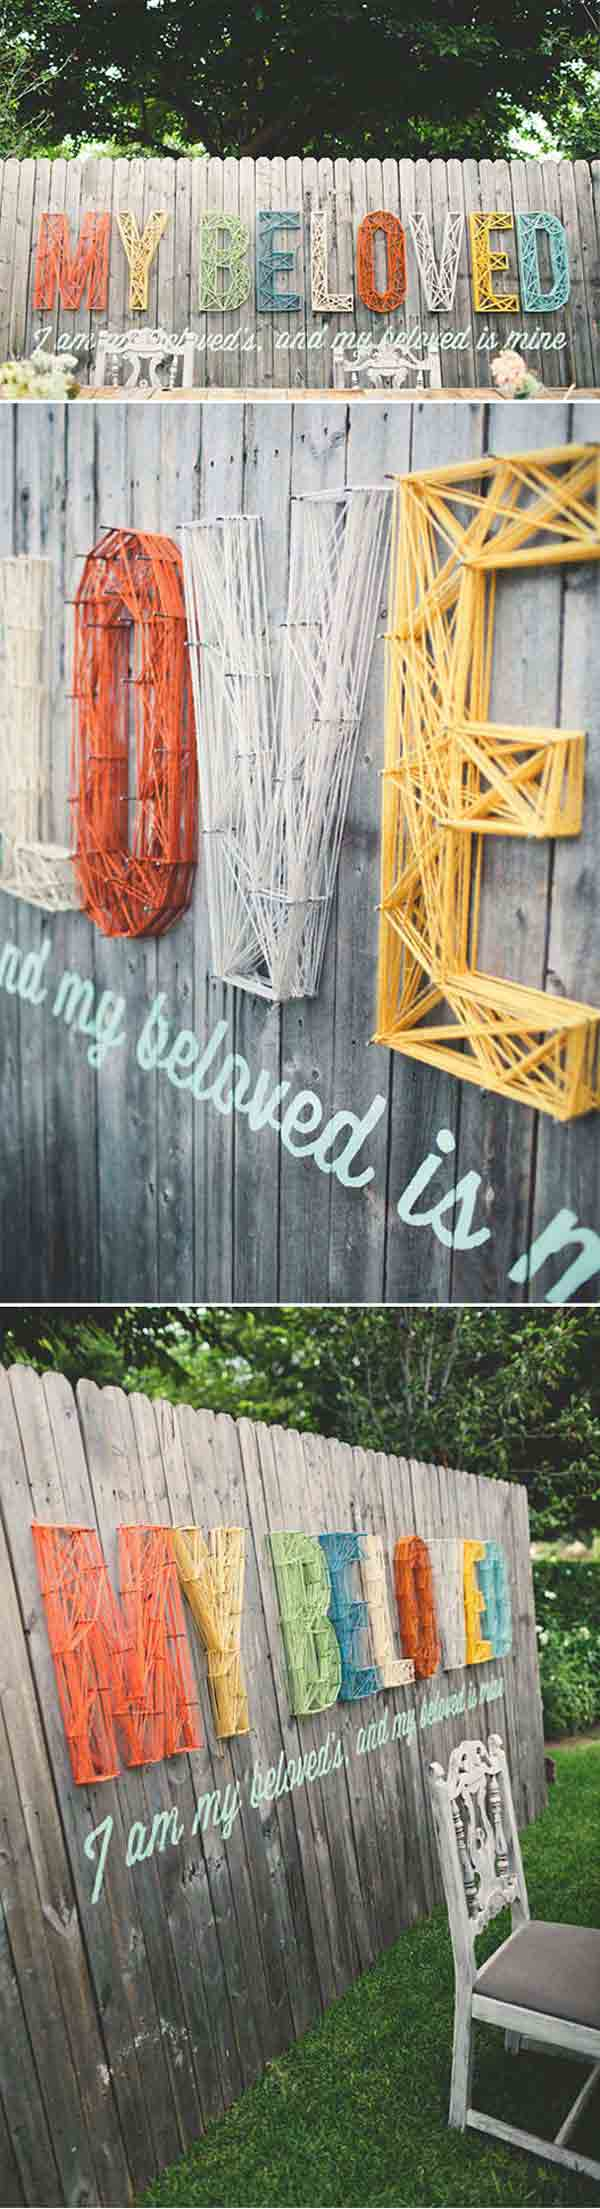 garden-fence-decor-woohome-15